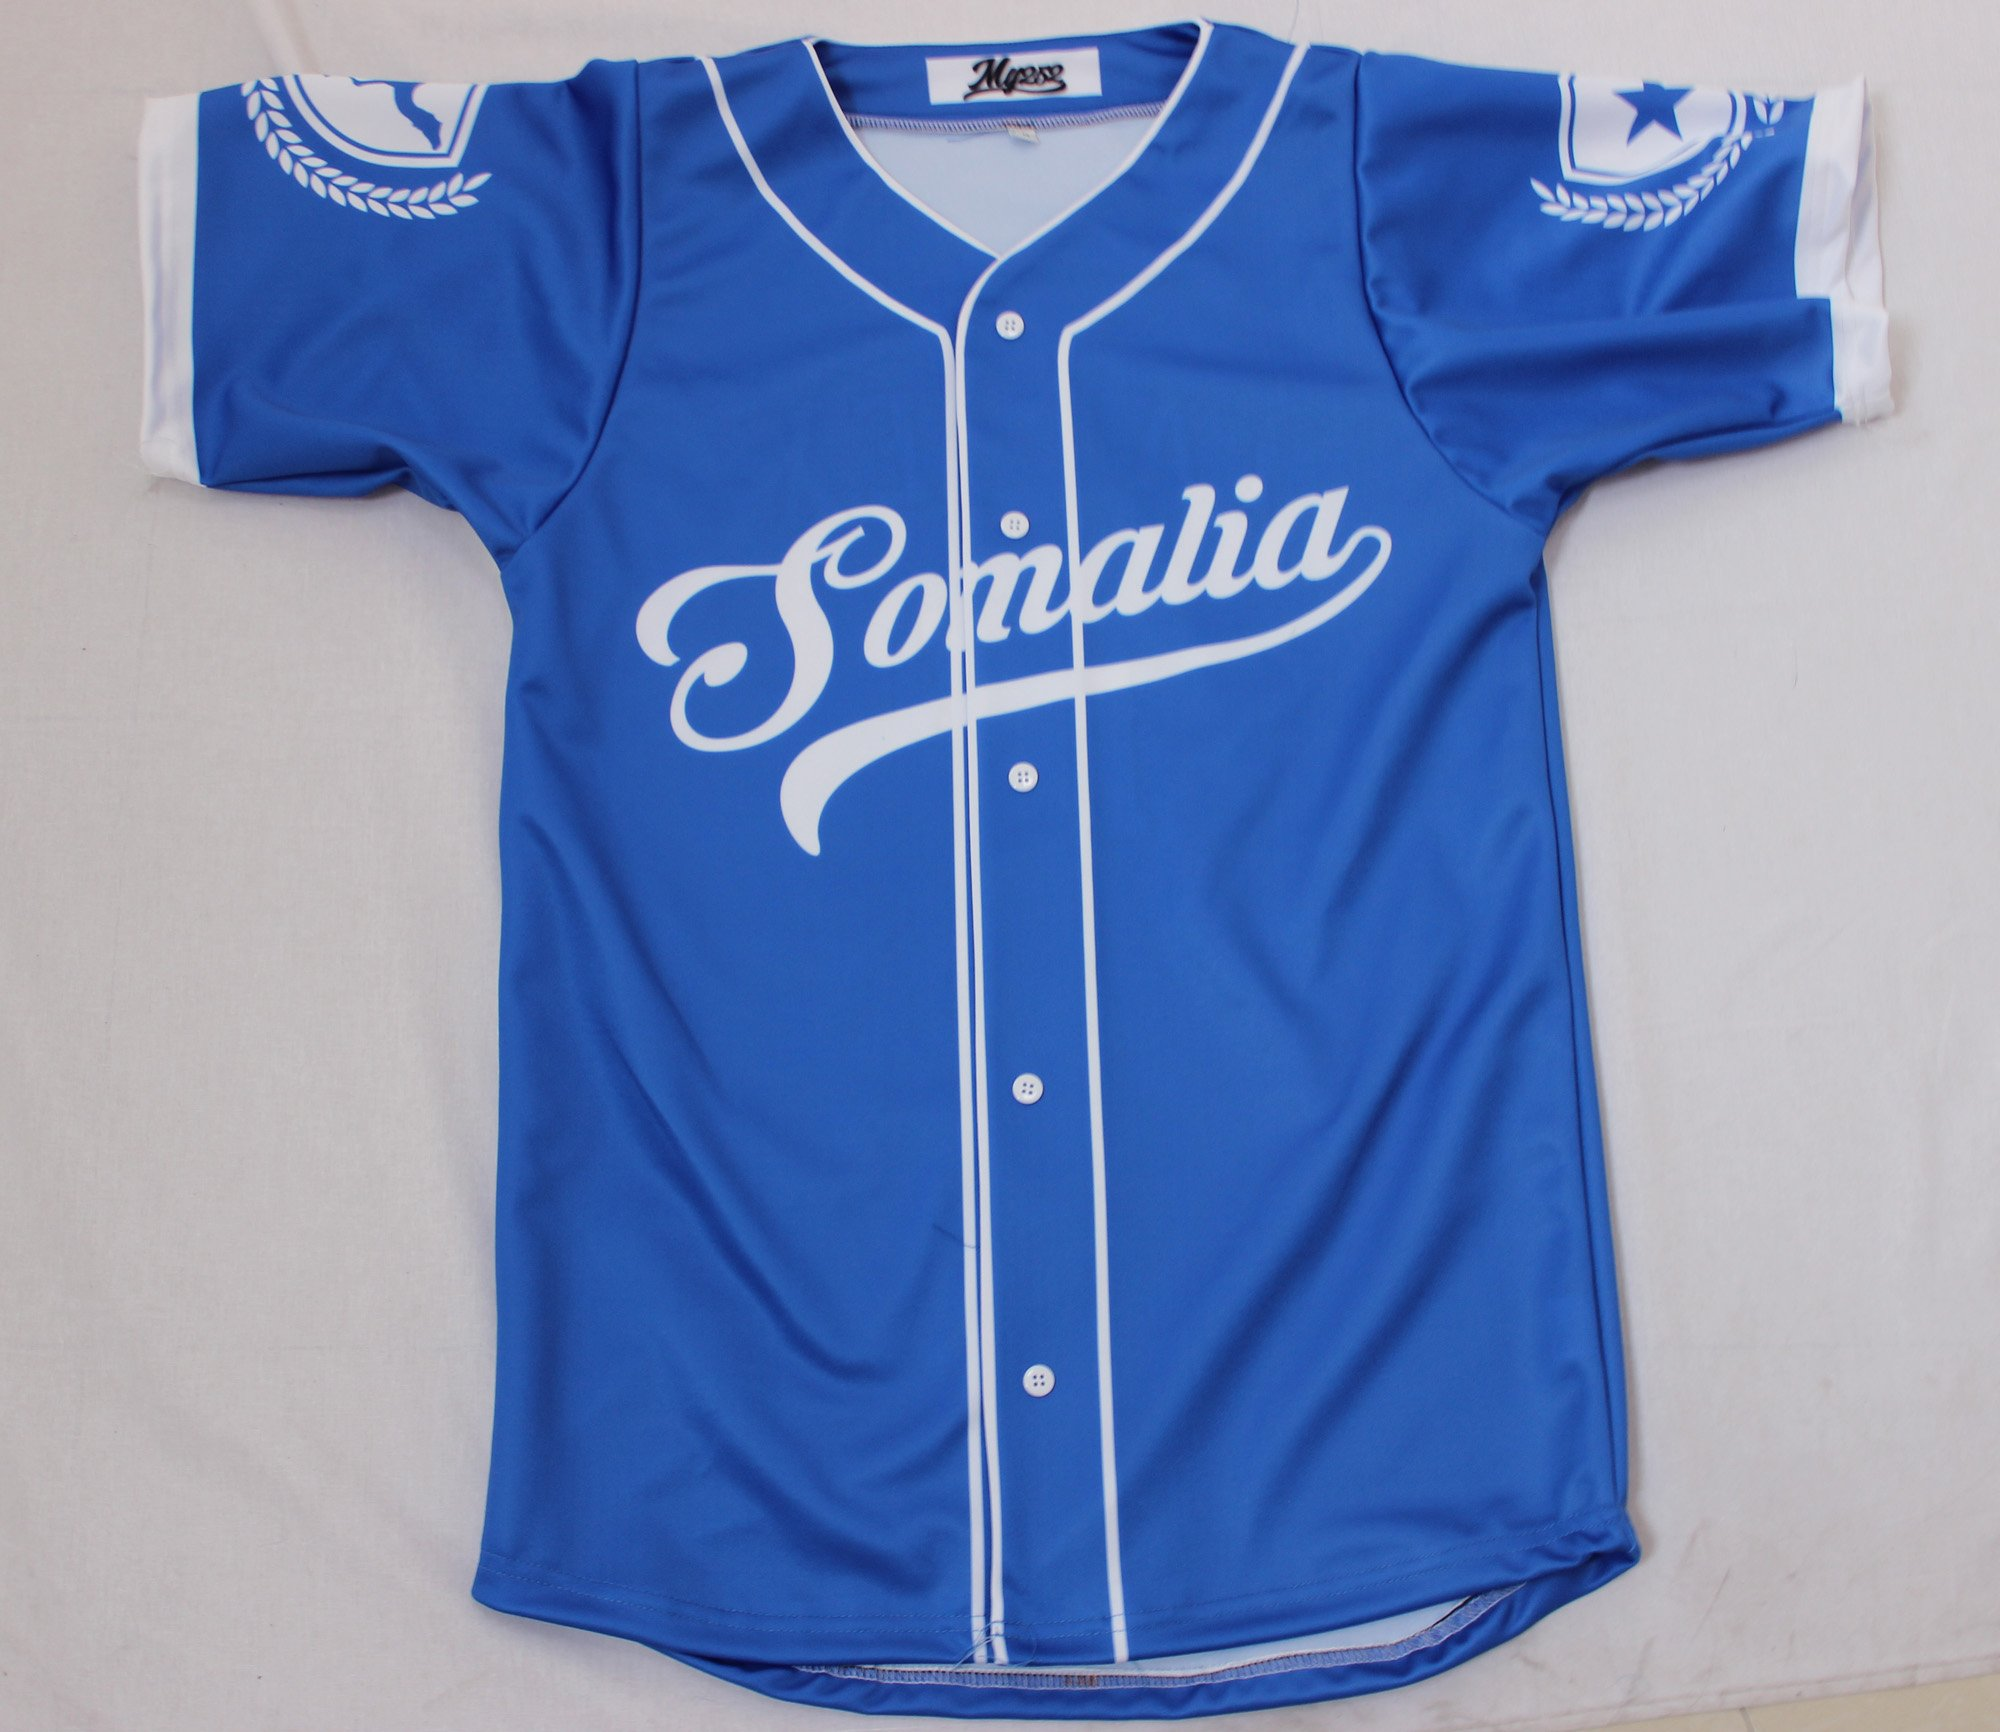 Custom sublimation baseball shirts with free designs Designer baseball shirts